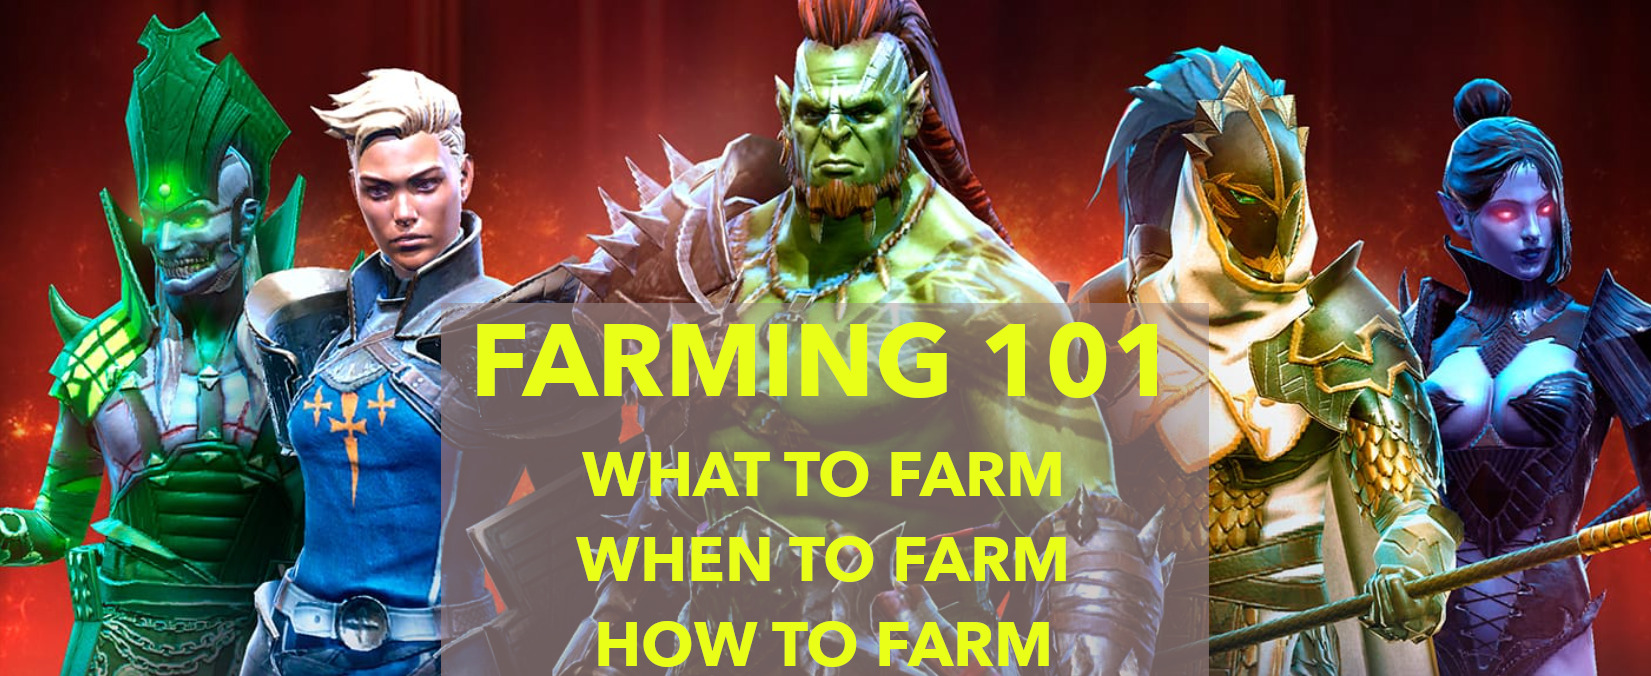 Farming 101 - What to farm, when to farm, how to farm